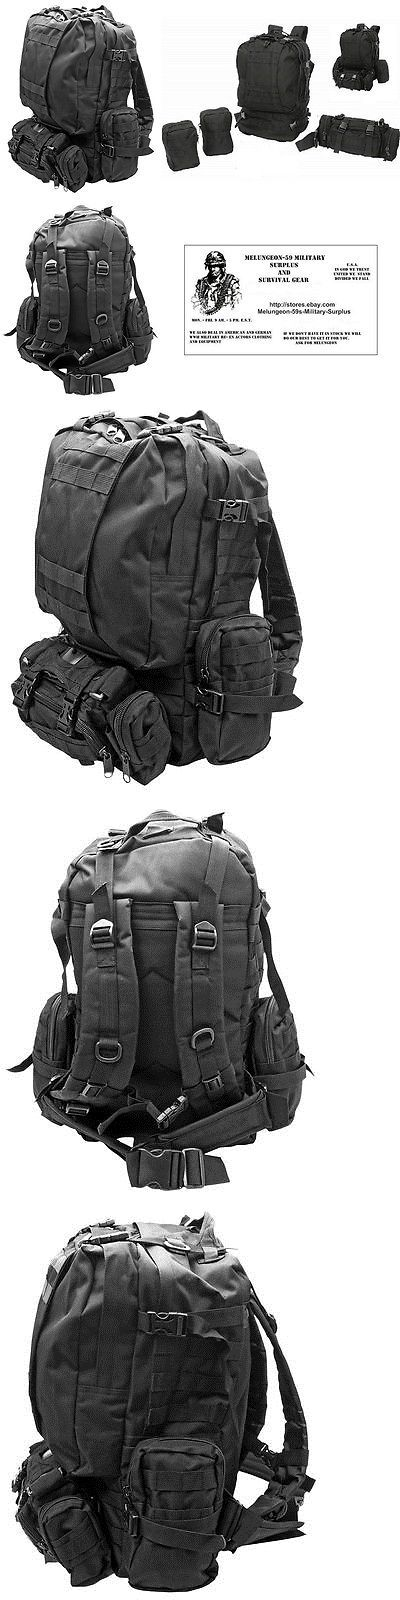 Other Emergency Gear 181415: 4Pc Black Backpack Bug Out Bag Tactical / Military / Survival Gear Day Pack -New -> BUY IT NOW ONLY: $56.95 on eBay!